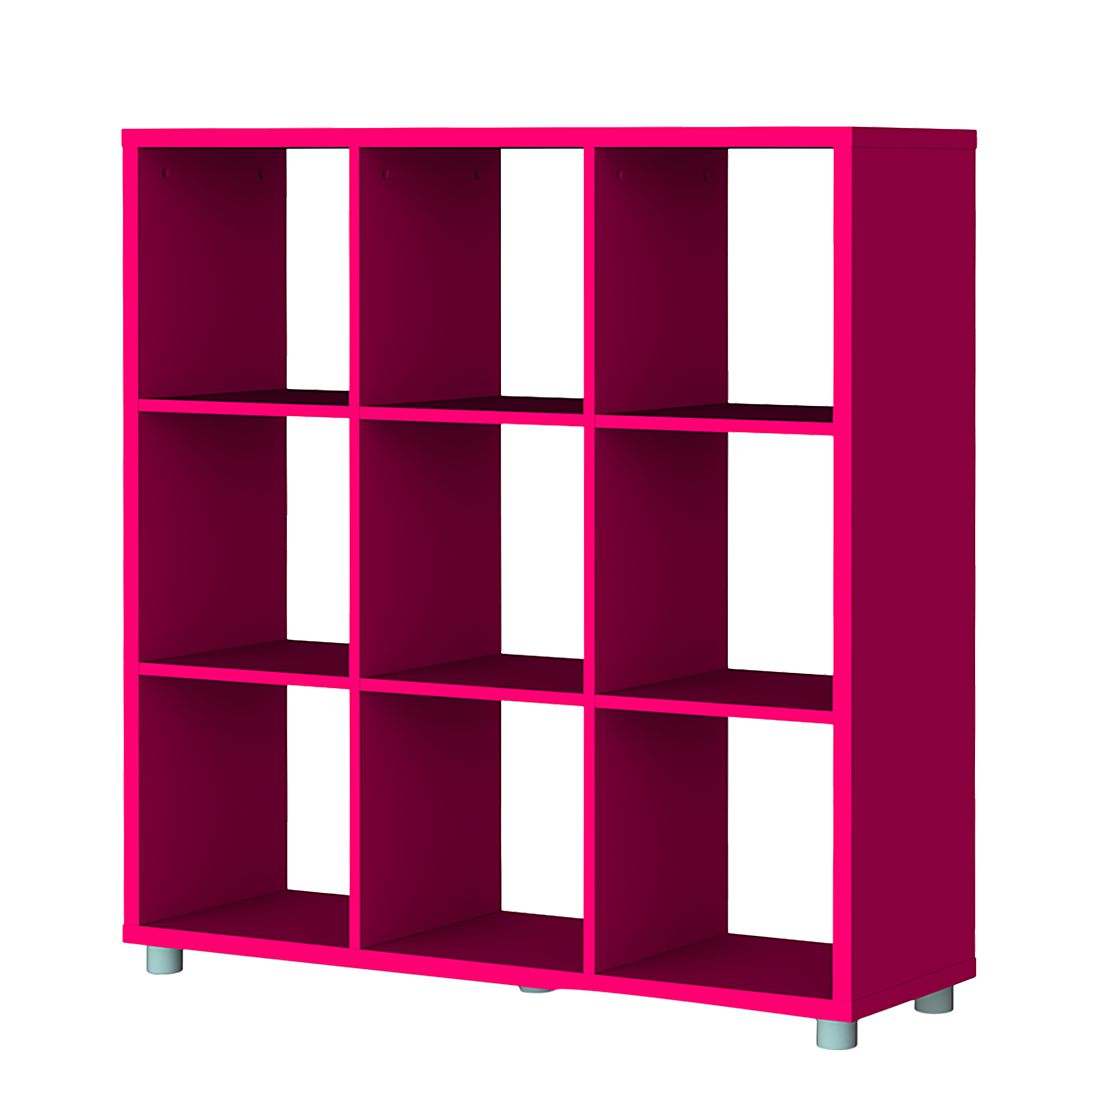 Regal Viereckig XL Box - Fuchsia, Tenzo